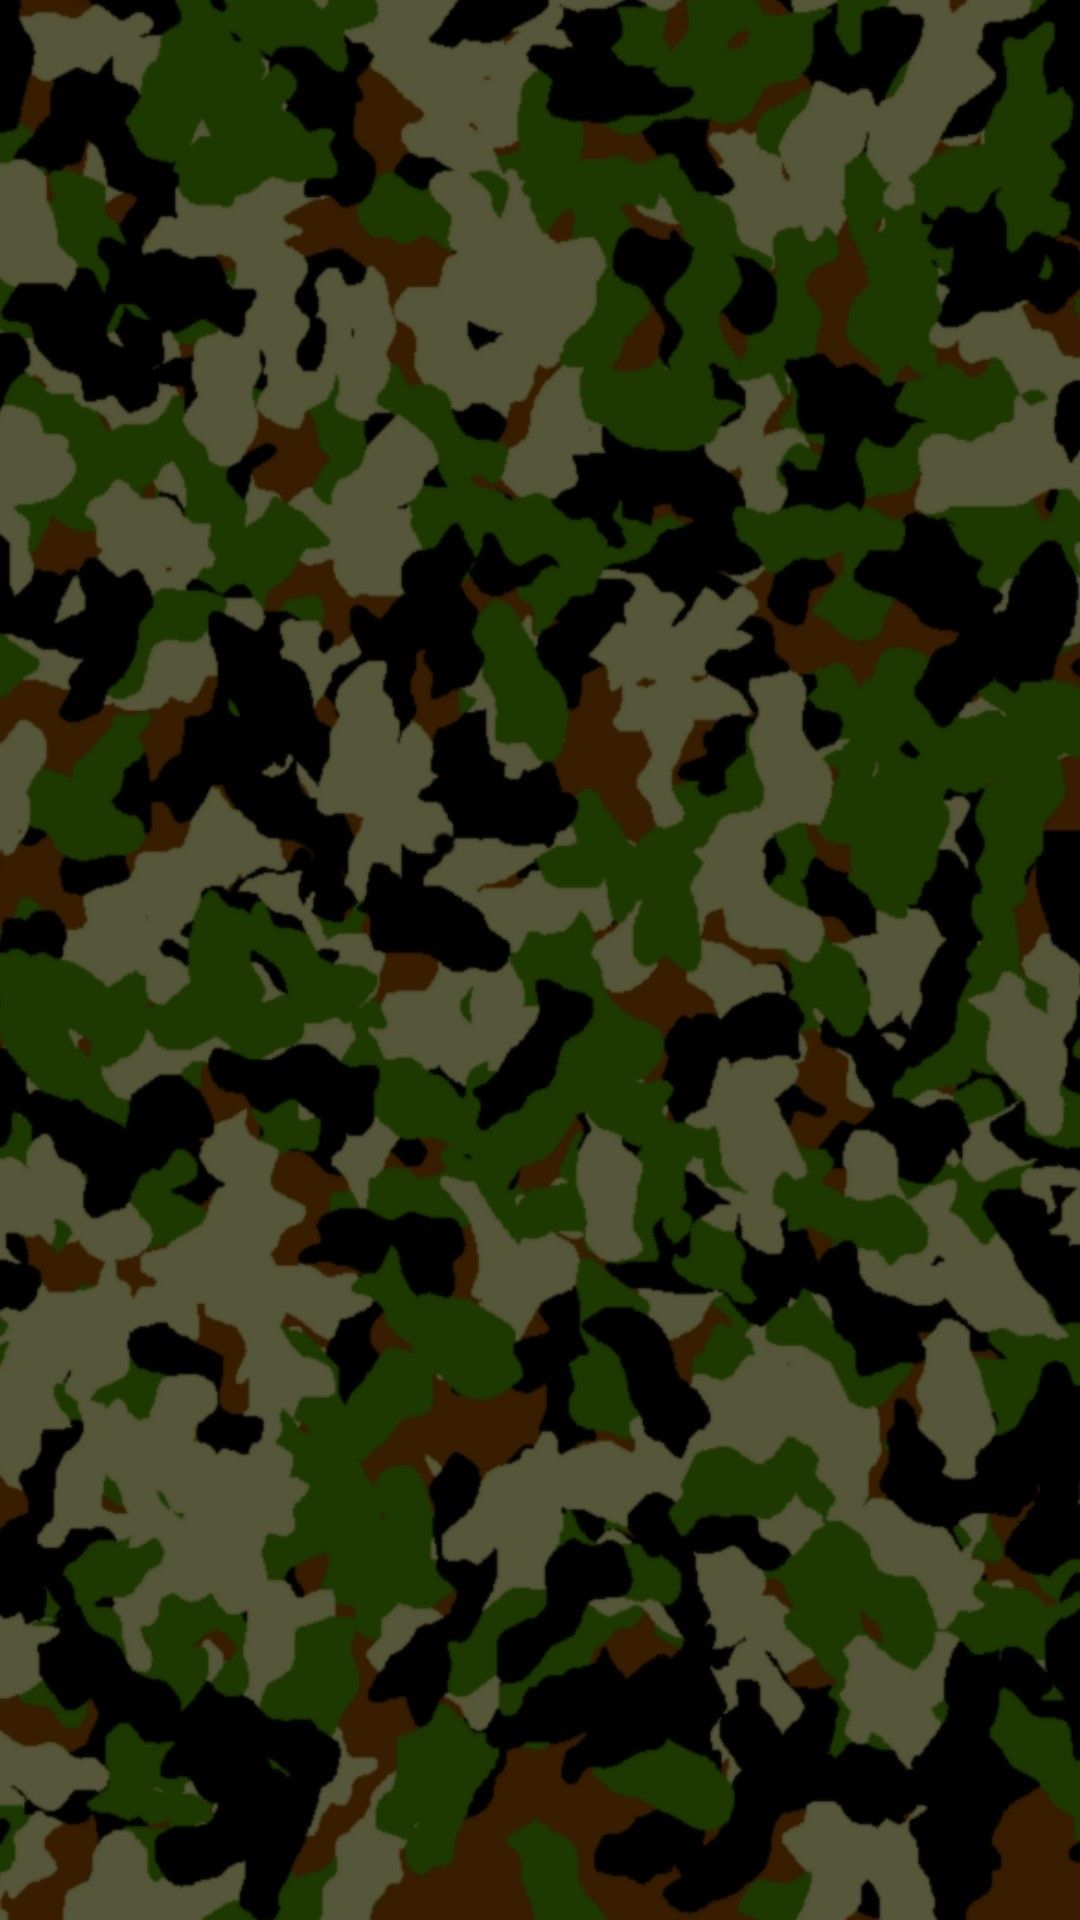 Camouflage Wallpaper 183 Free Hd Wallpapers Camouflage Wallpaper Camo Wallpaper Military Wallpaper